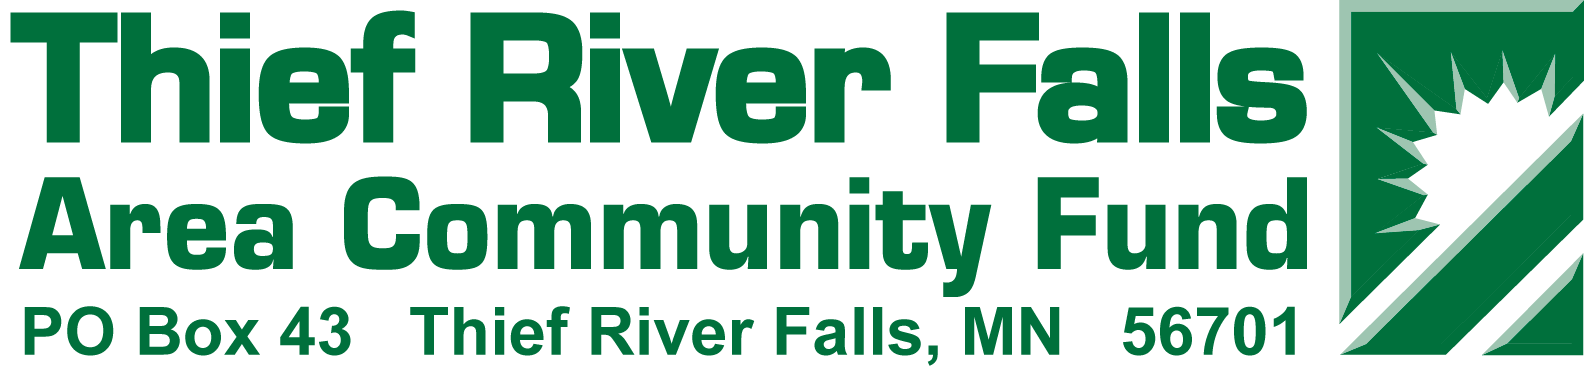 TRF Area Community Fund